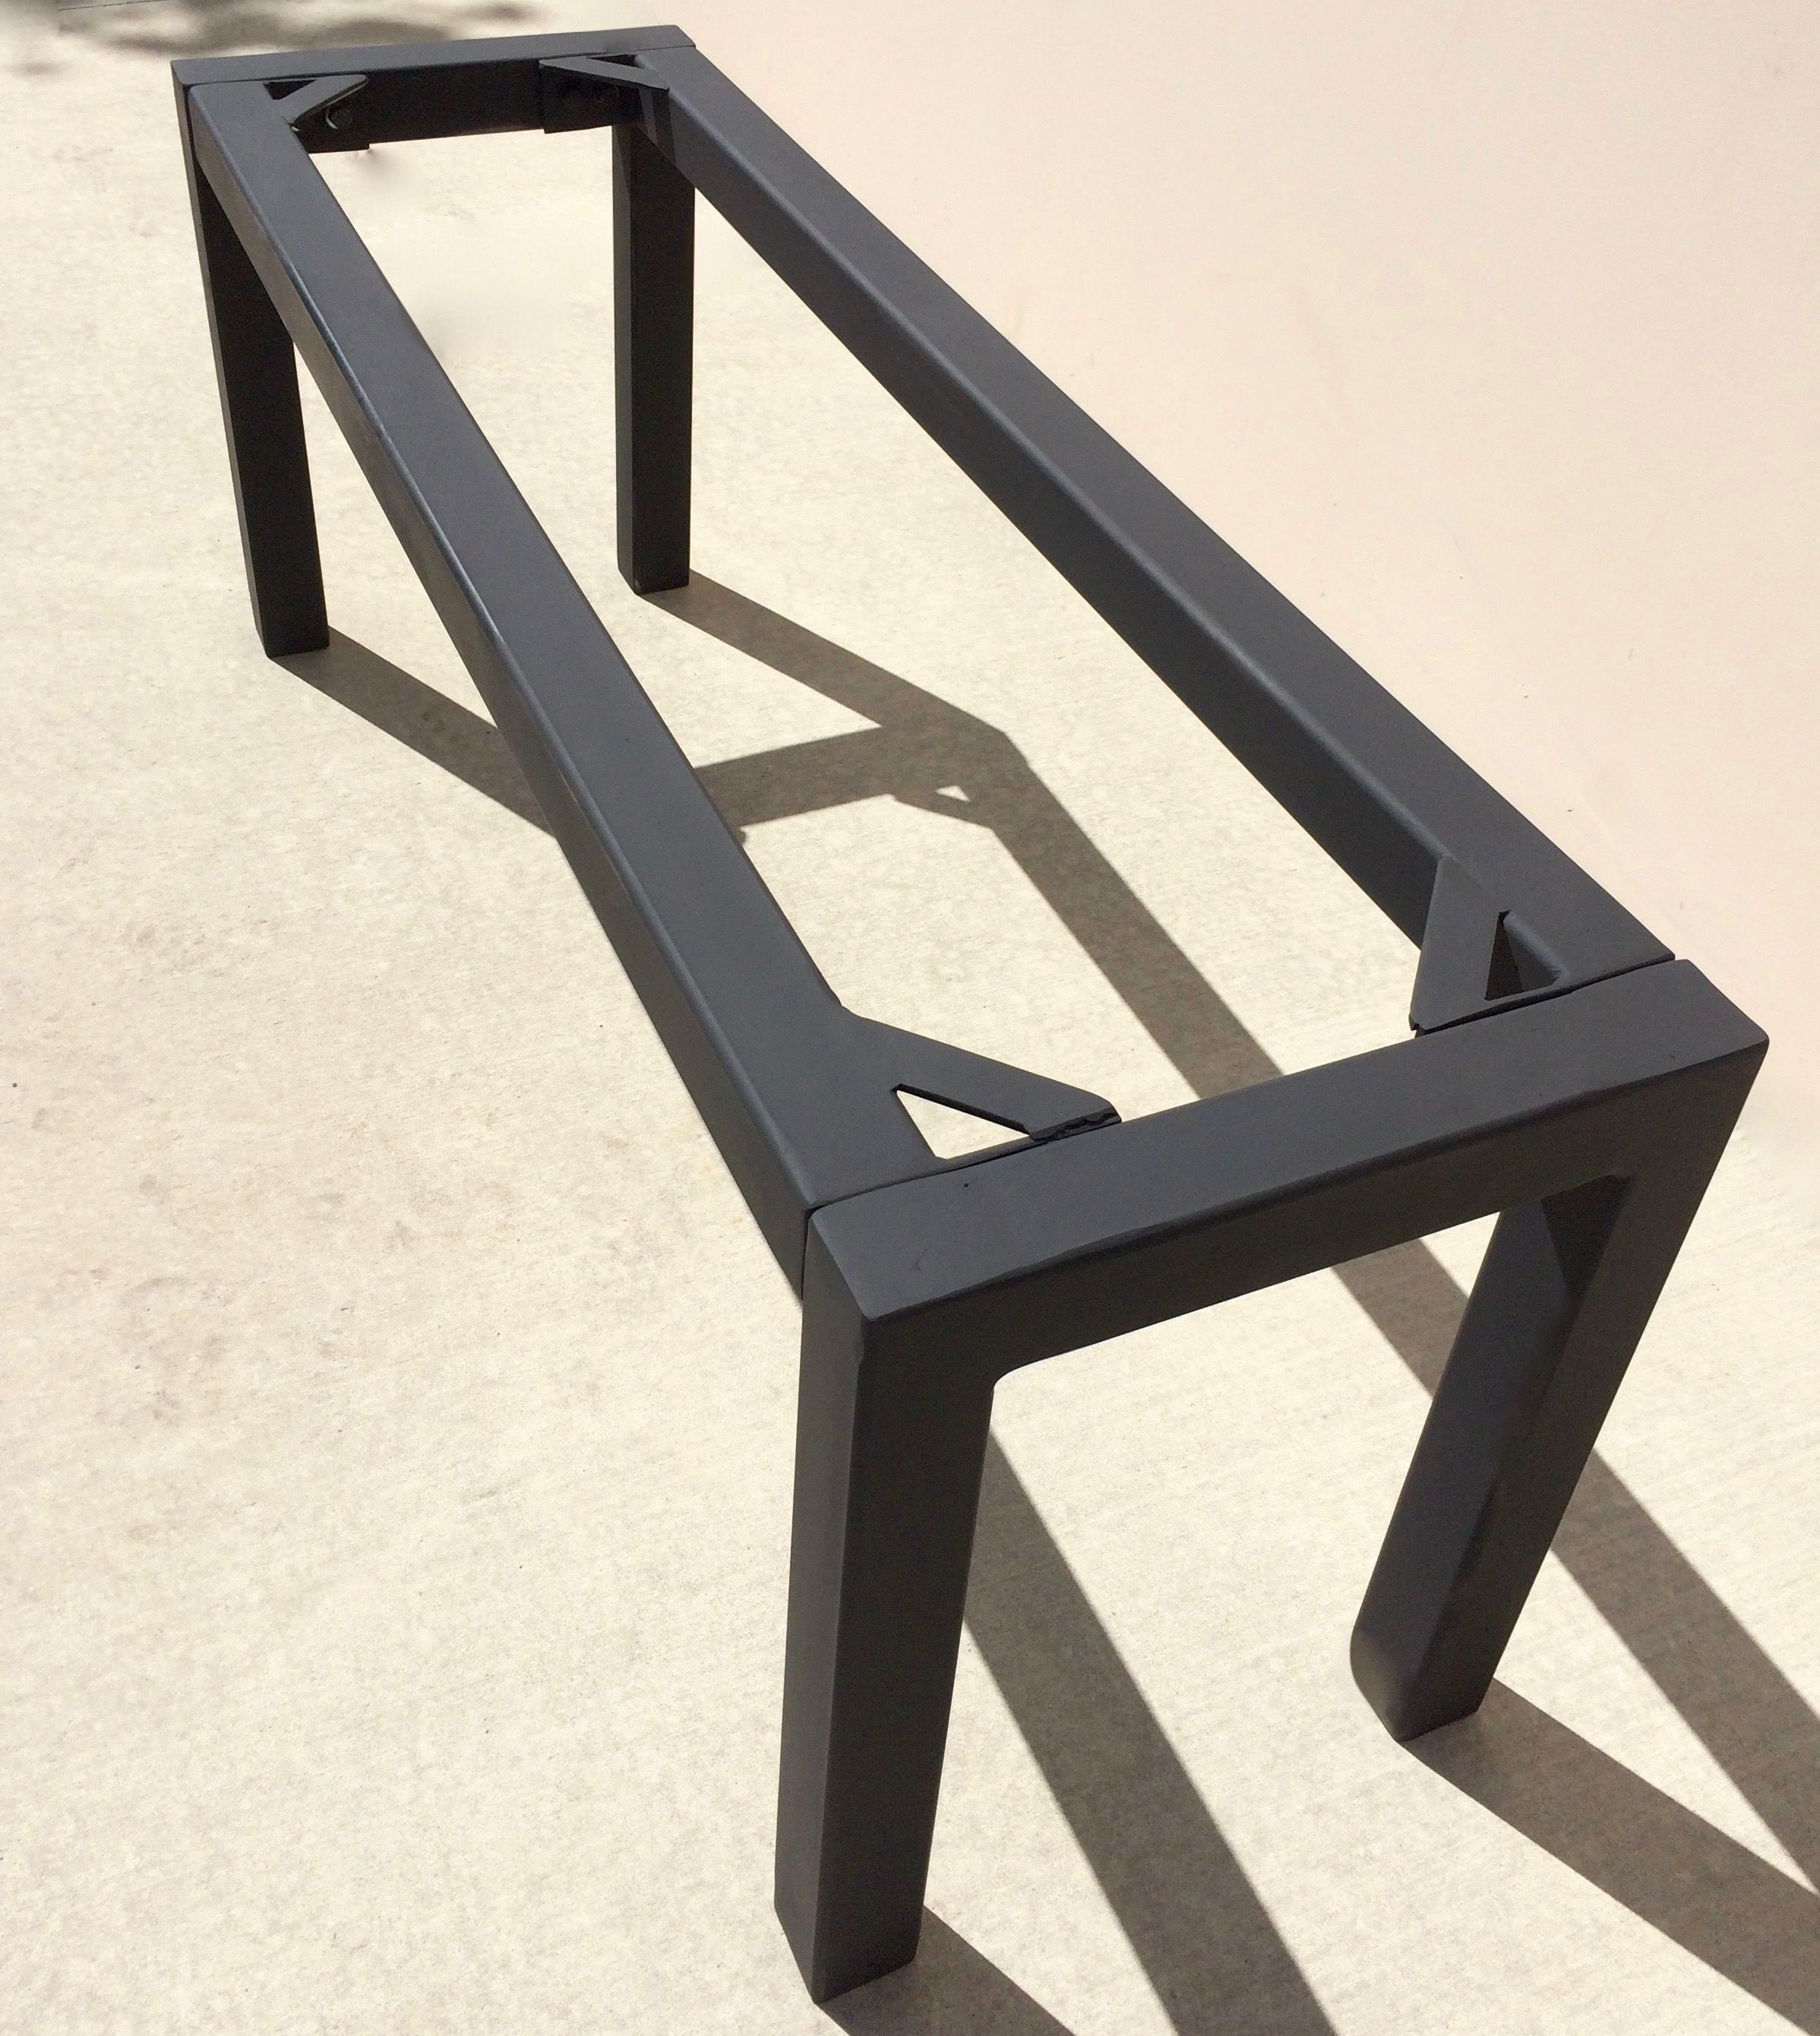 Steel table base in custom dimensions or standard sizing